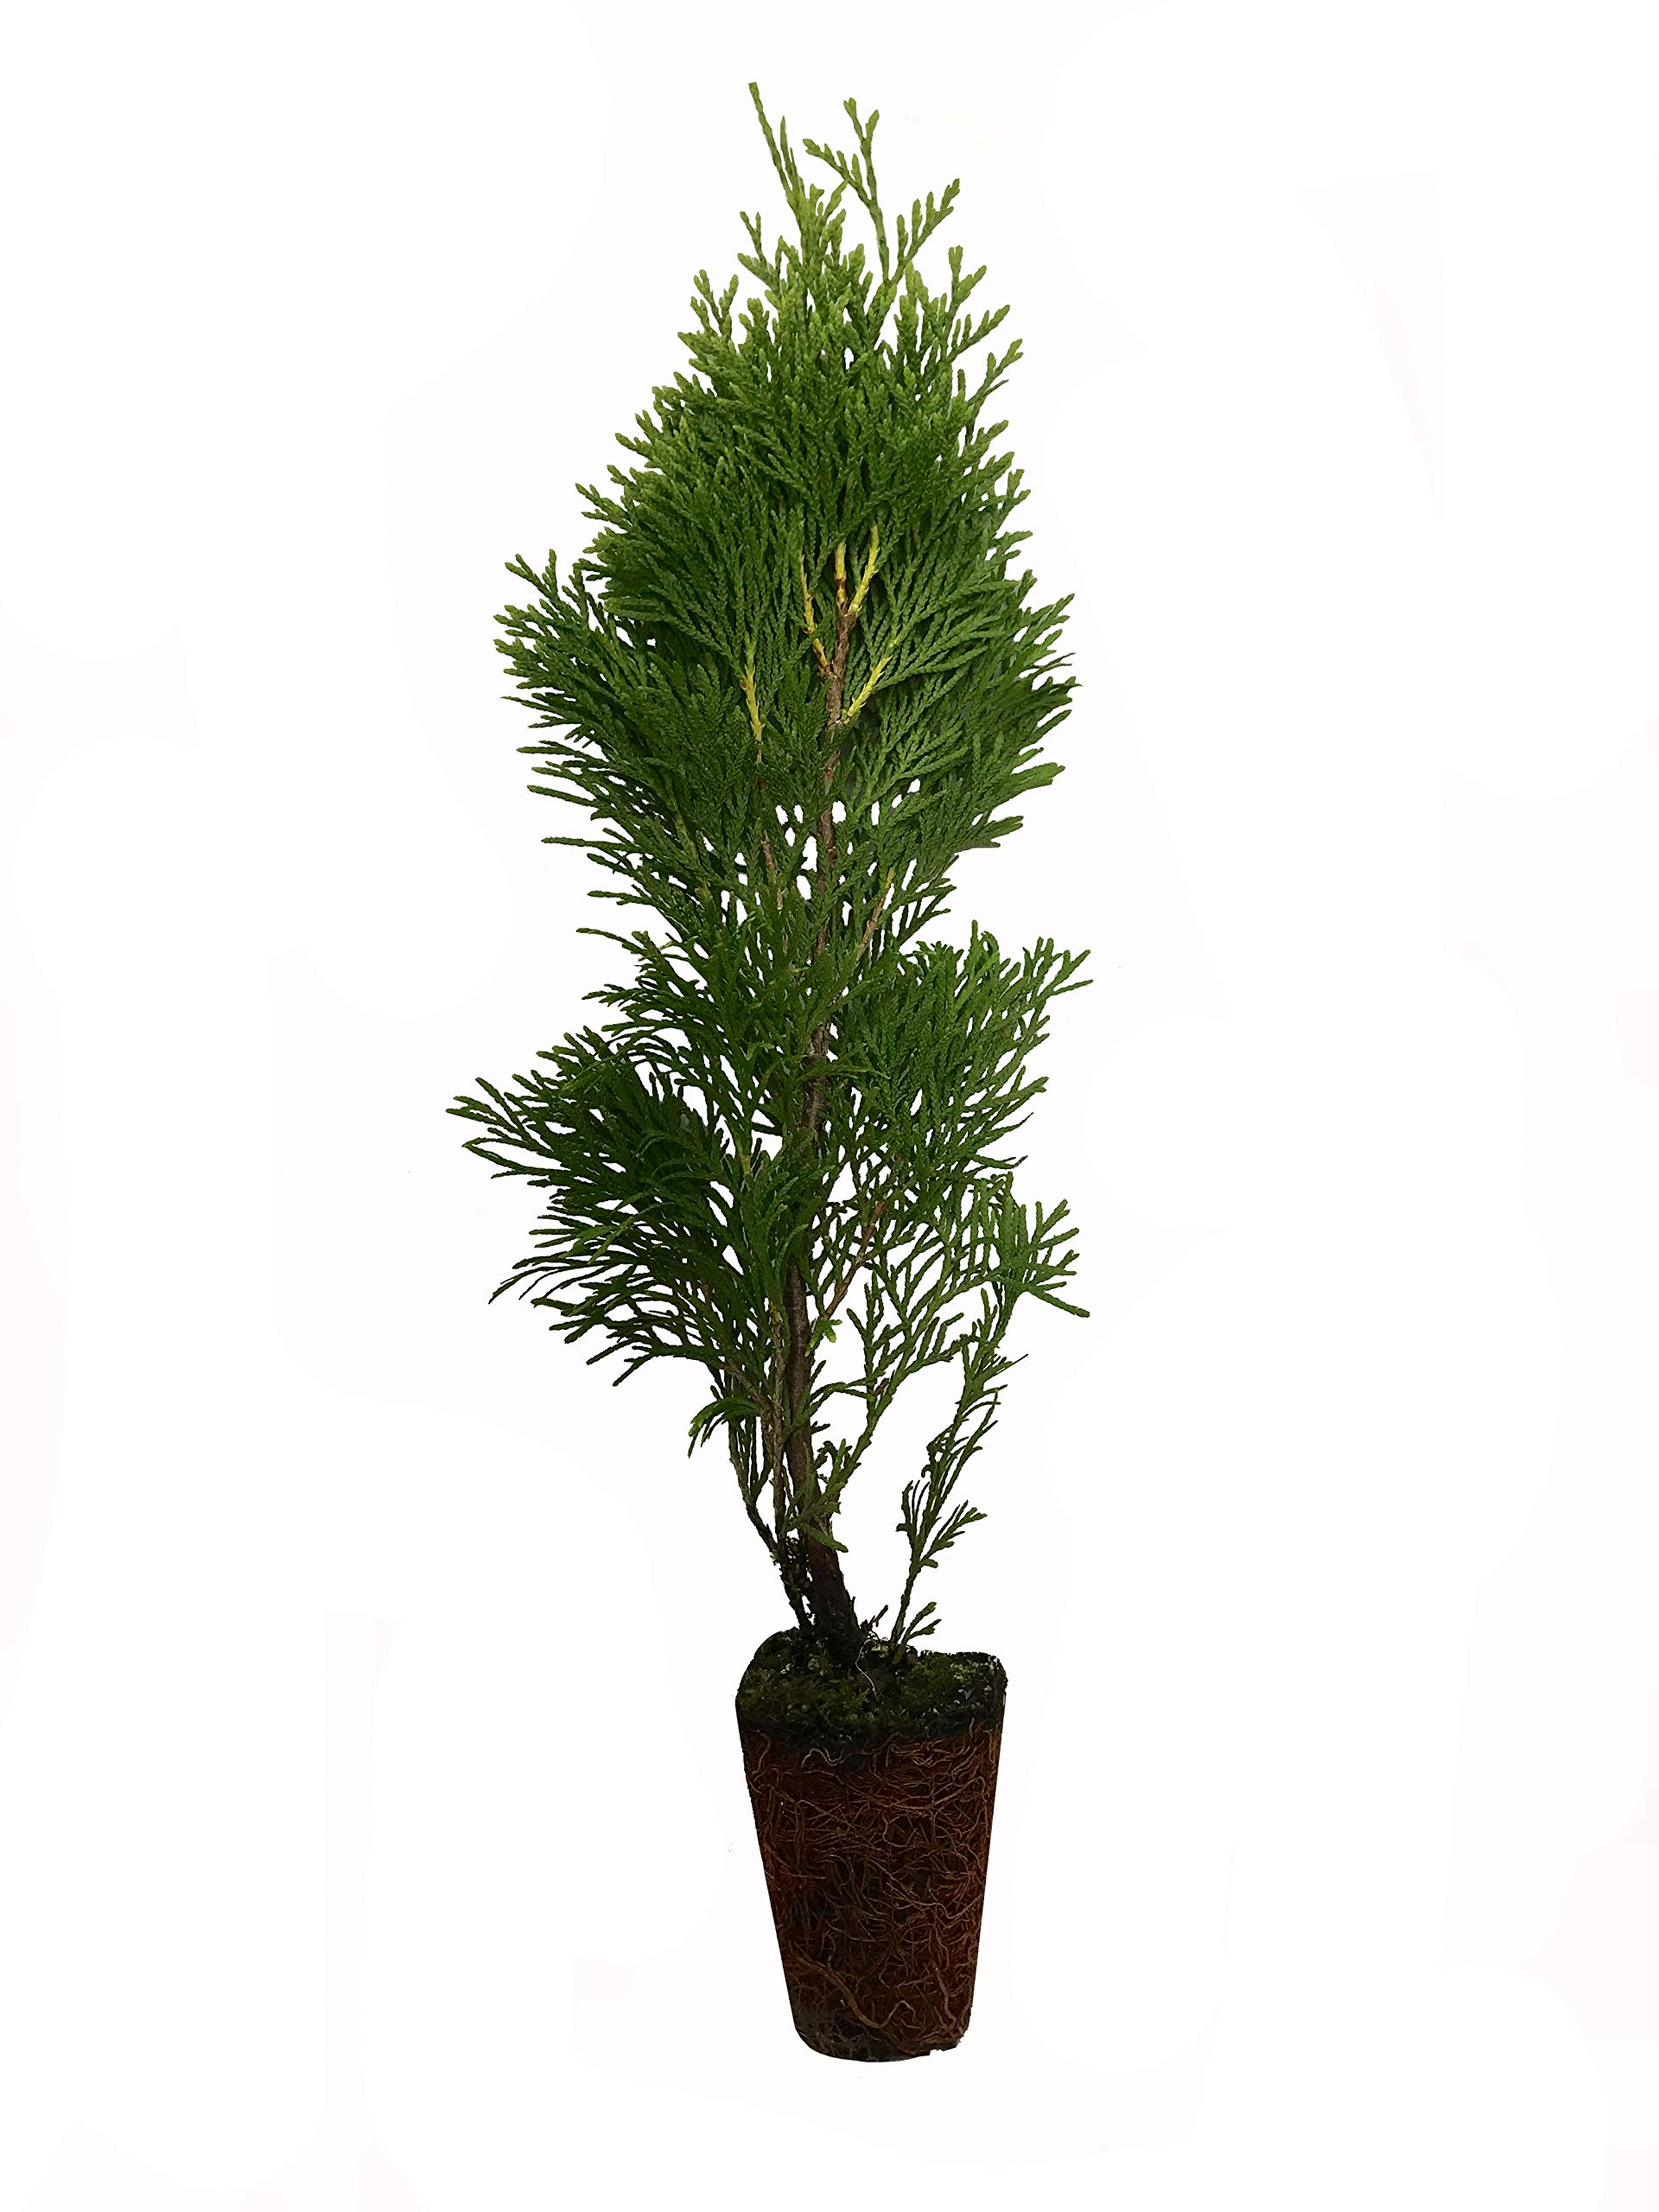 Thuja Emerald Green Arborvitae - 20 Live Plants - 2'' Pot Size - Evergreen Privacy Tree by Florida Foliage (Image #1)